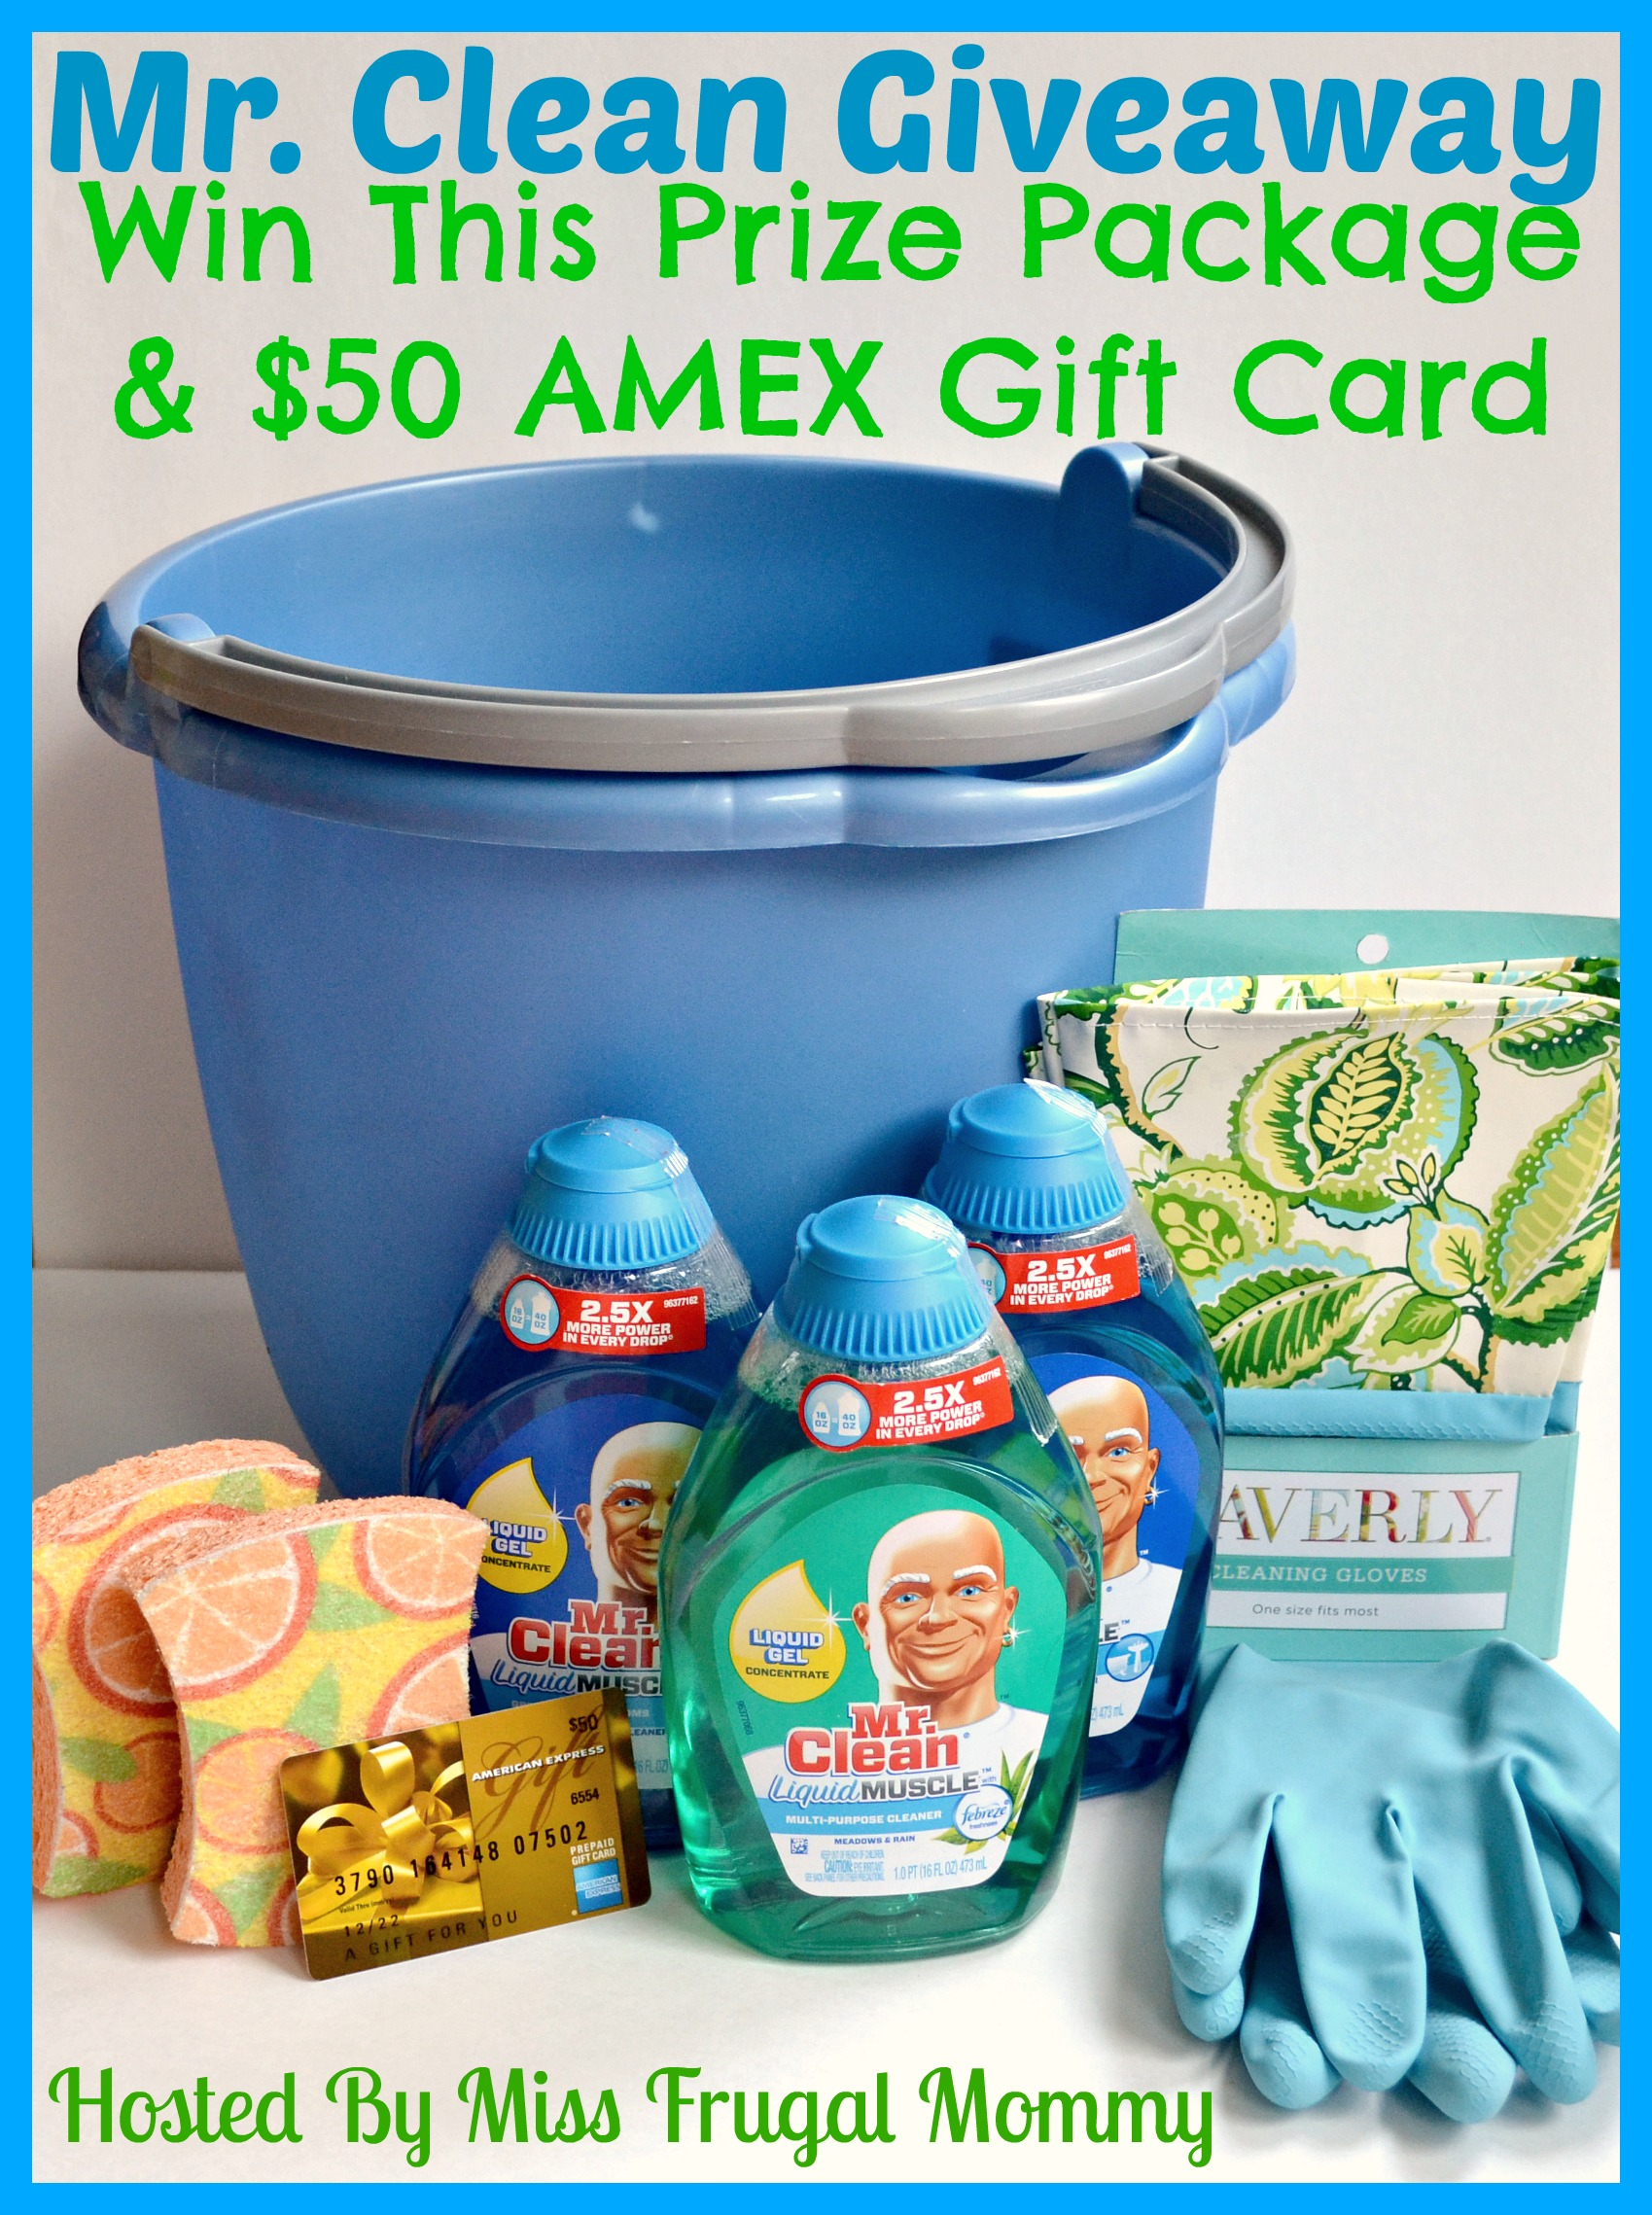 Mr. Clean Prize Package & $50 AMEX Gift Card Giveaway US Ends 5/11